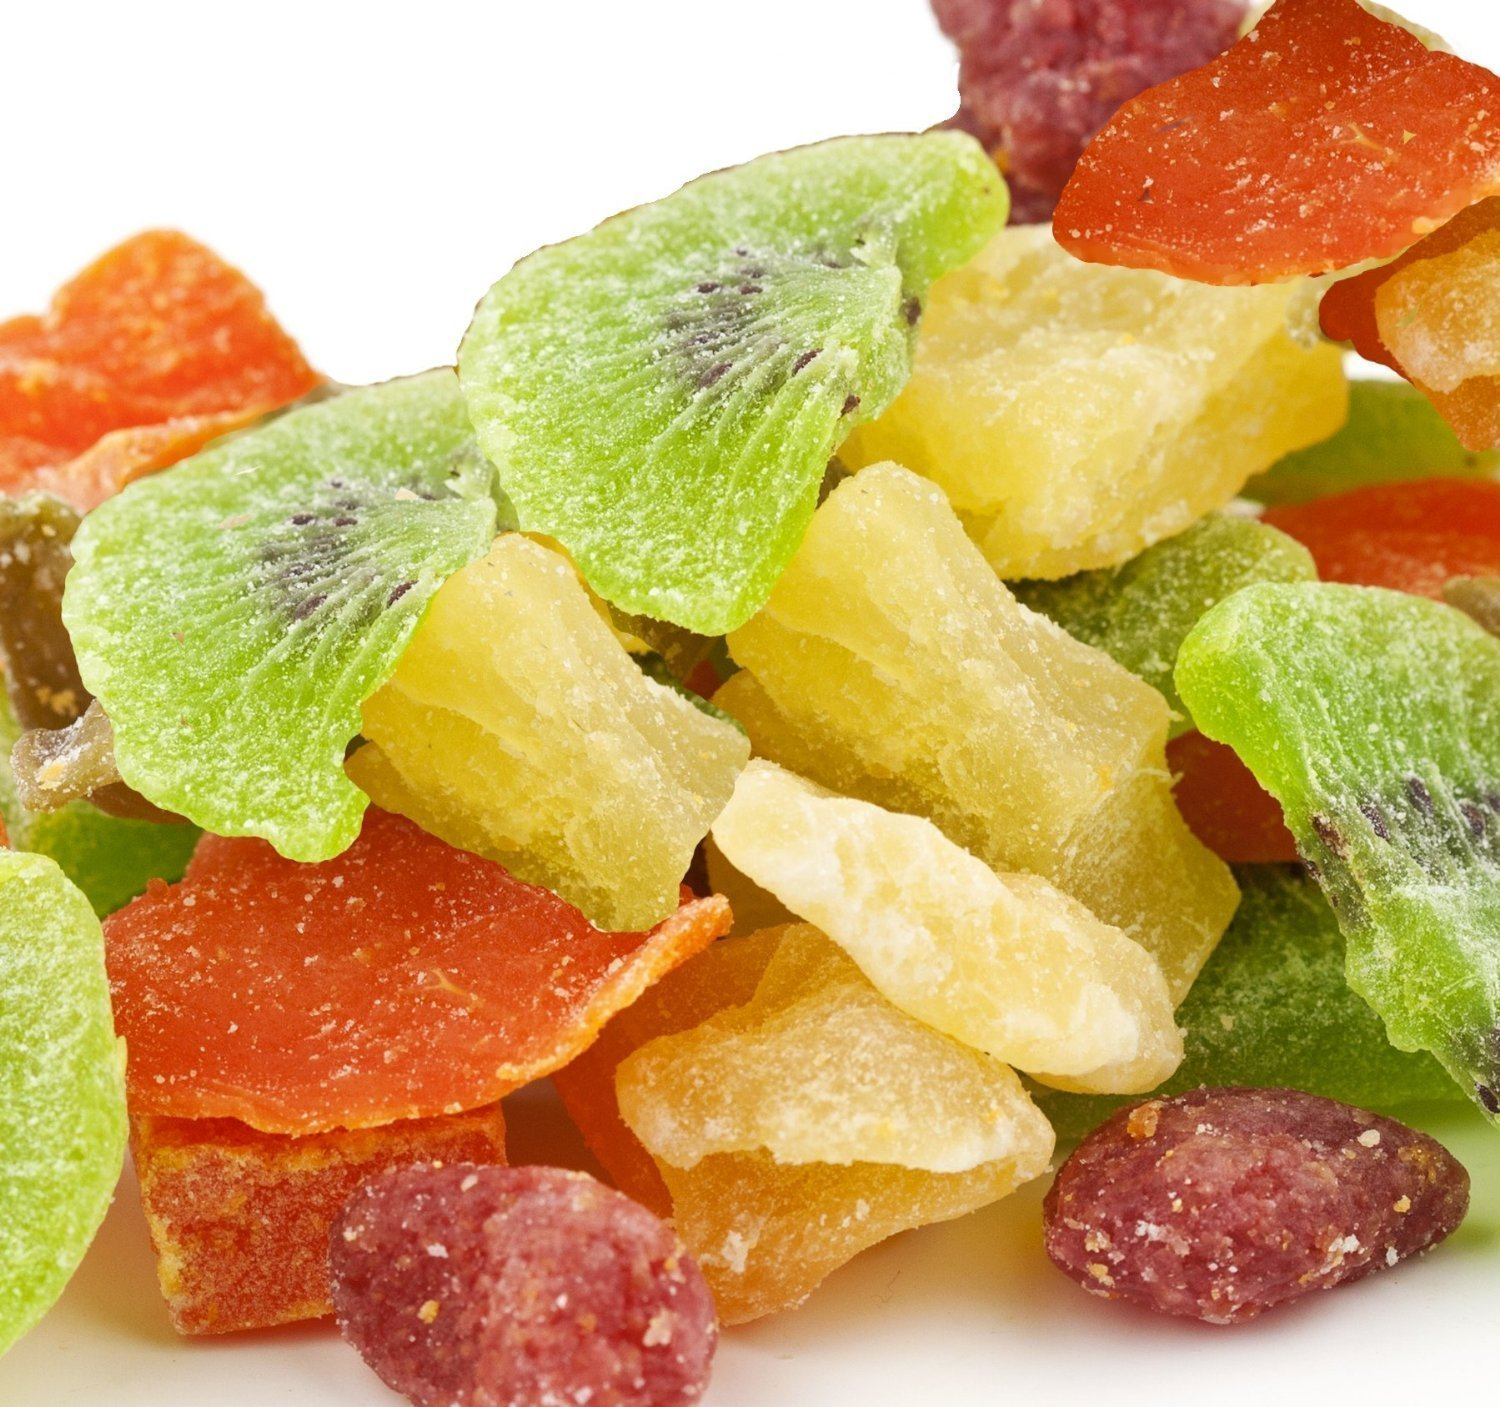 CandyMax Brand, Tropical Fruit Salad / Dried Fruit - 4 Lbs by CandyMax